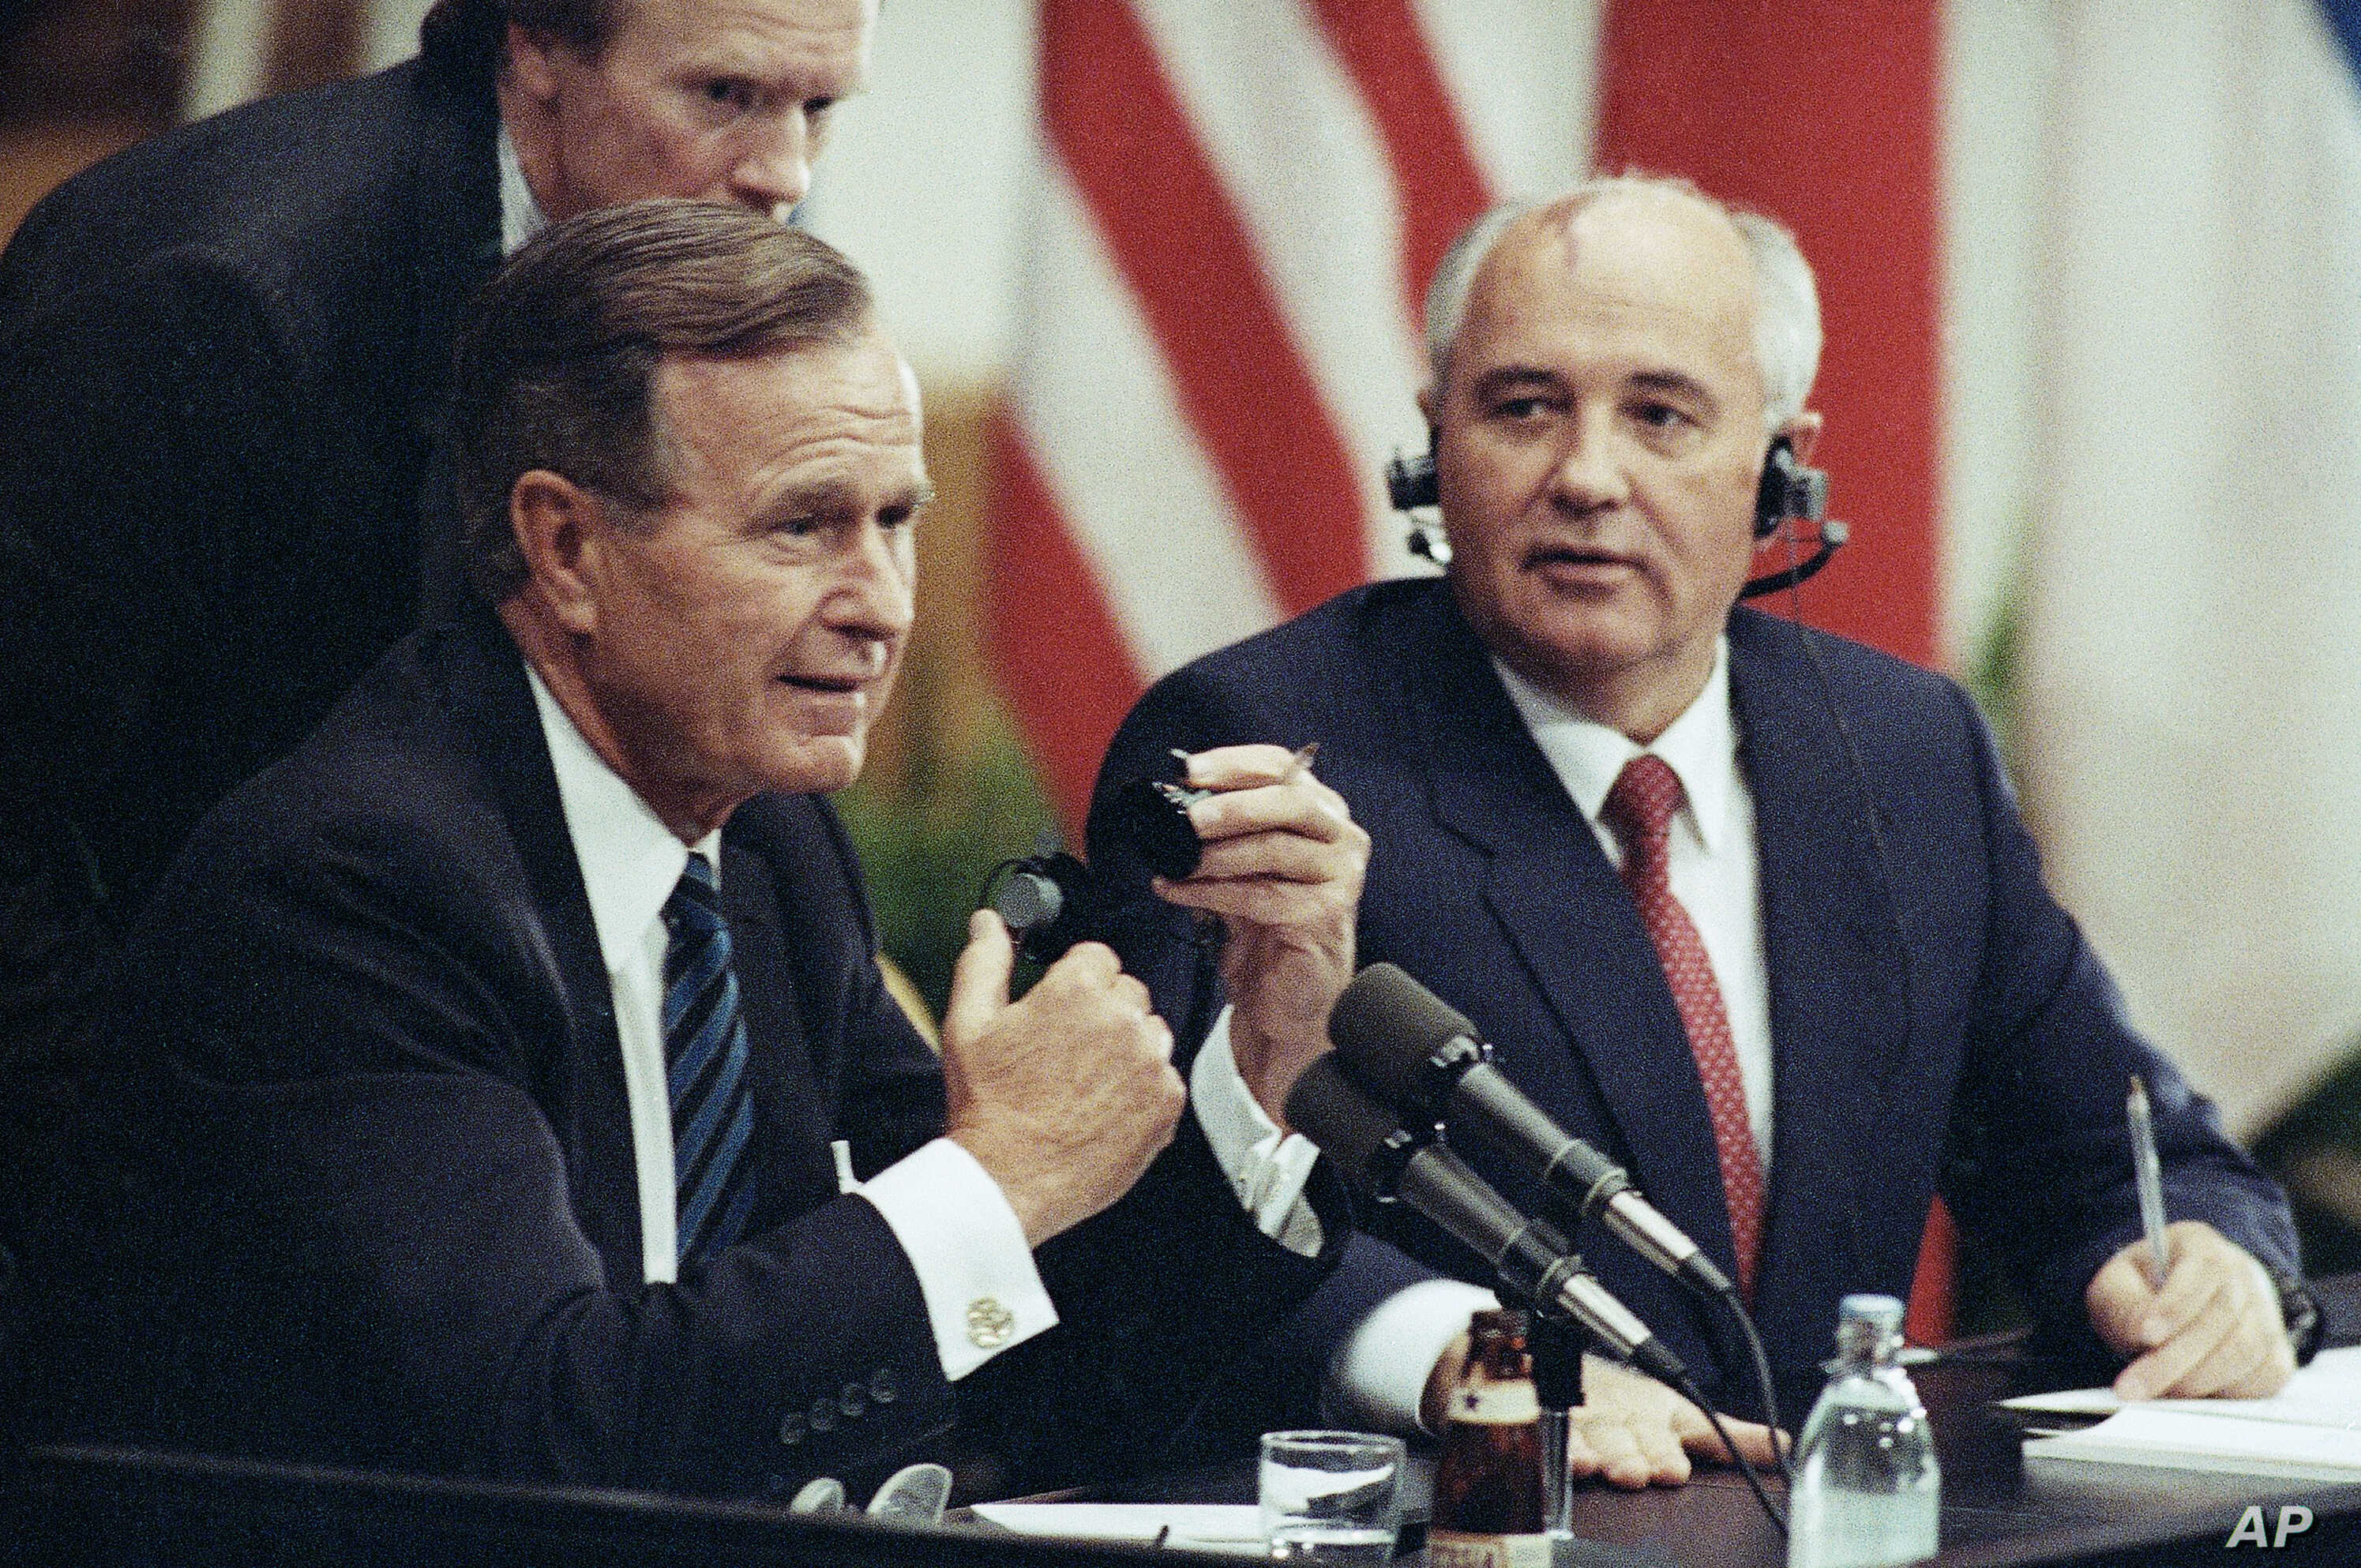 U.S. President George H. Bush works to get an earphone plug from his ear as Soviet President Mikhail Gorbachev laughs during their joint news conference, Sunday, Sept. 9, 1990 in Helsinki. (AP Photo/Liu Heung Shin)